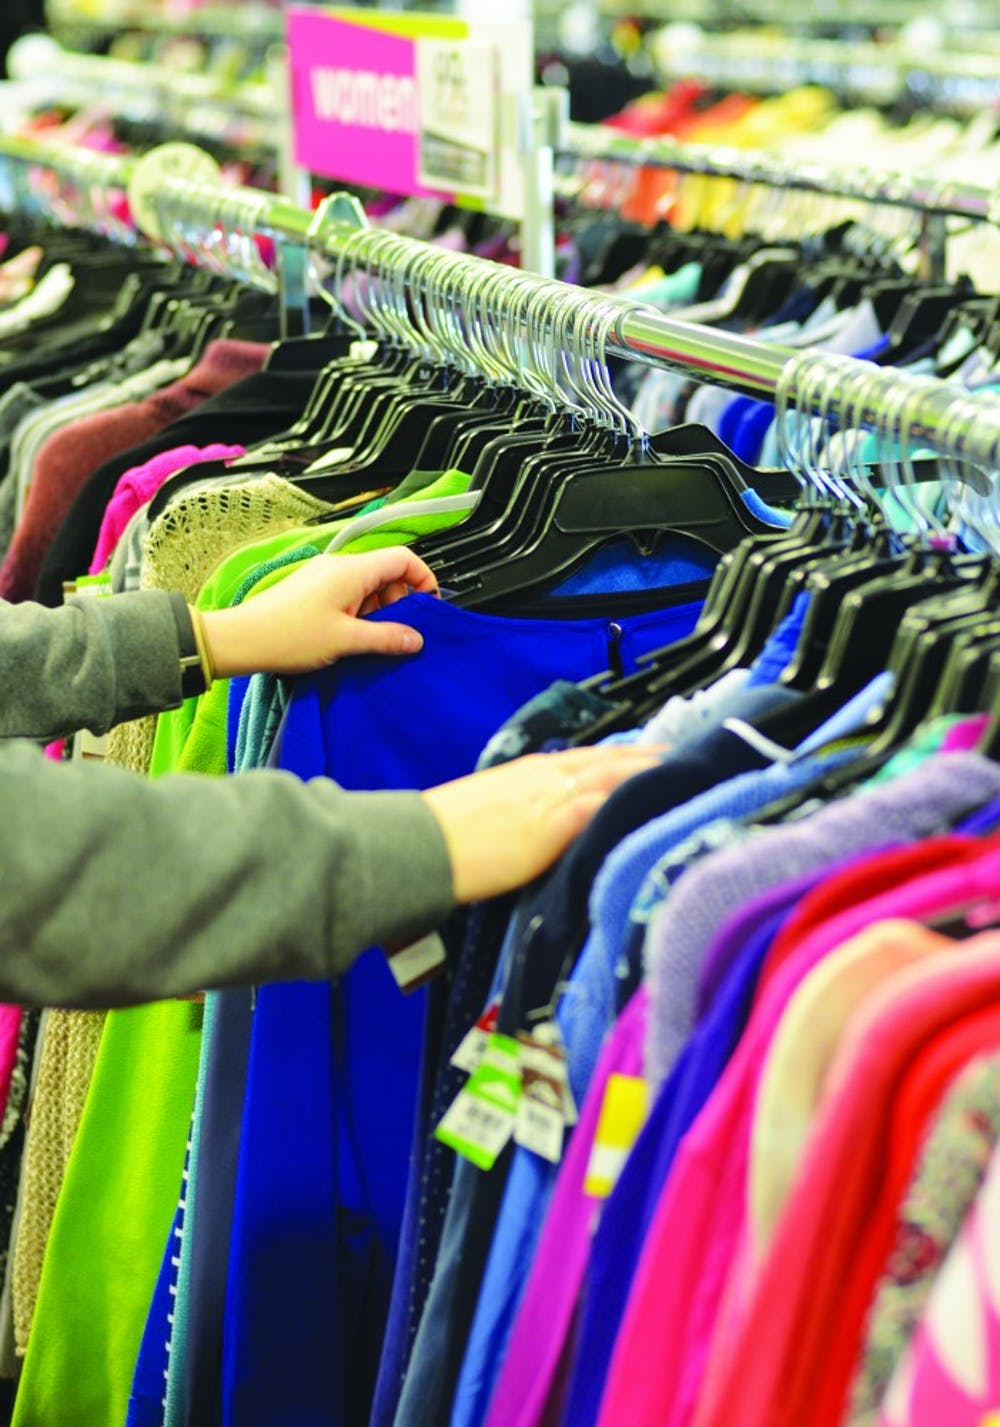 Nifty thrifting: A guide to clothes on a budget